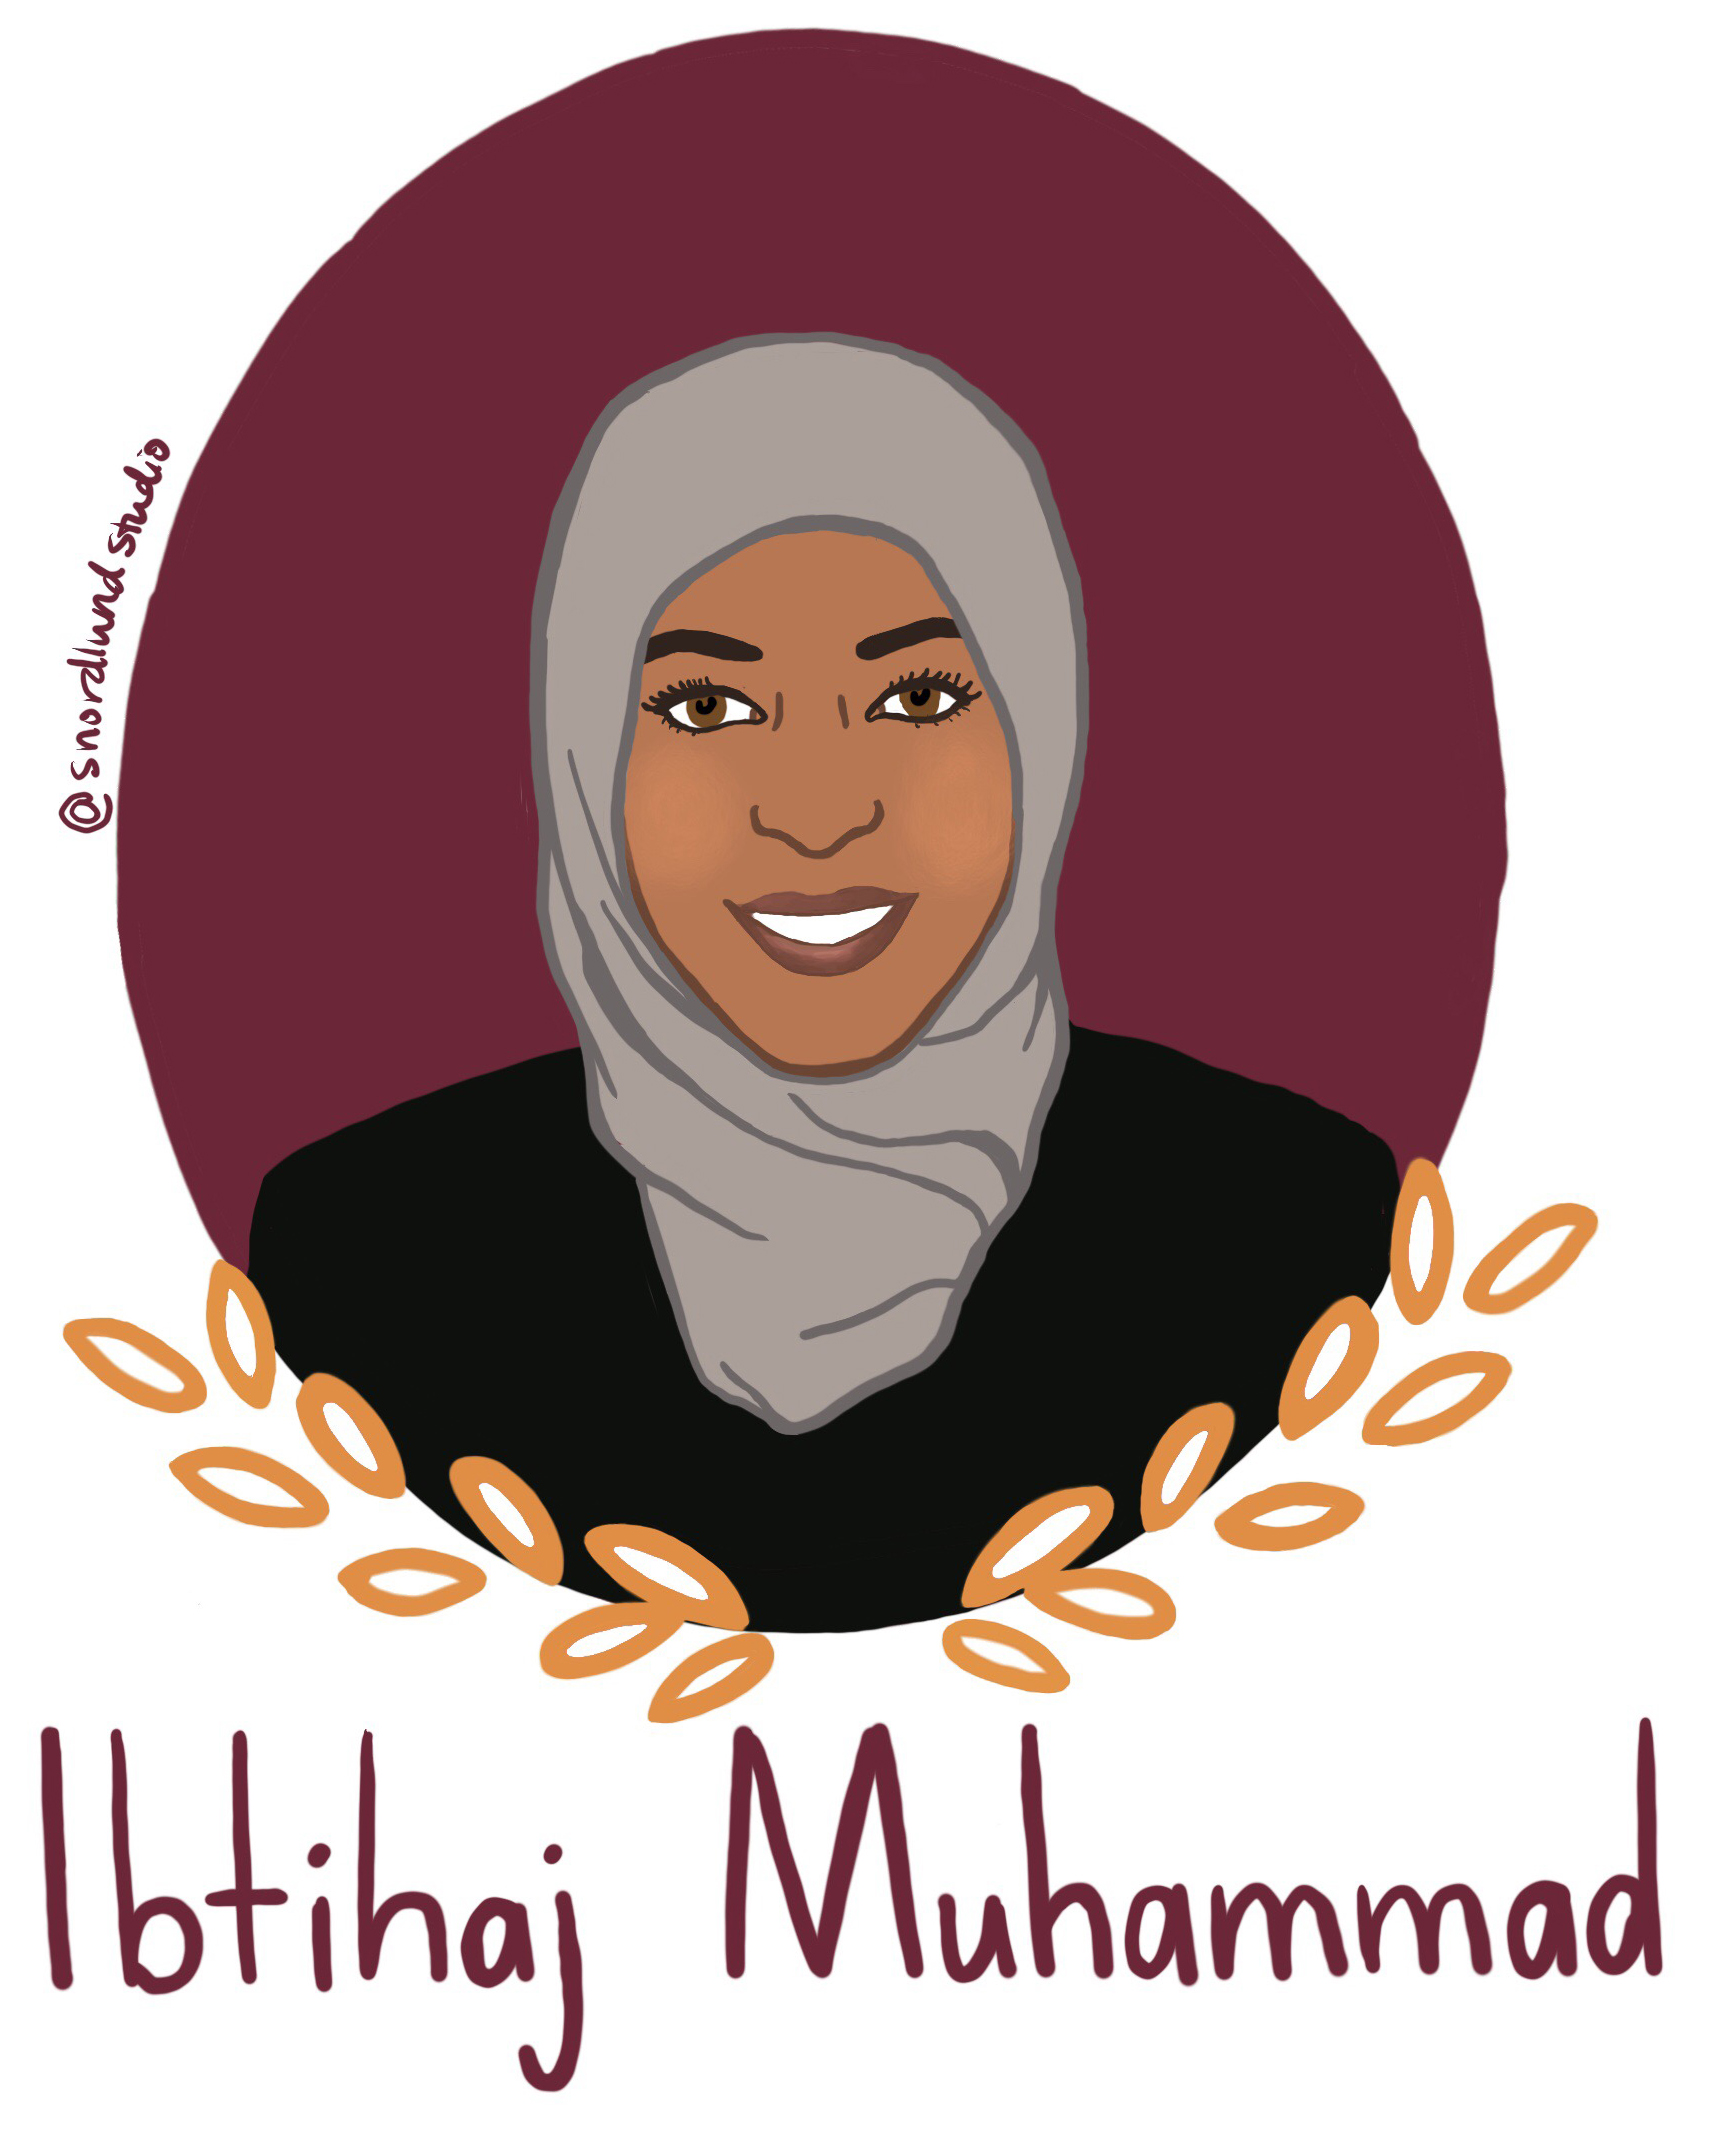 31. Ibtihaj Muhammad - Ibtihaj Muhammad is a fencer and business owner. She's the first Muslim-American athlete to earn a medal at the Olympics. Muhammad's business, Louella, sells modest Muslim clothing.